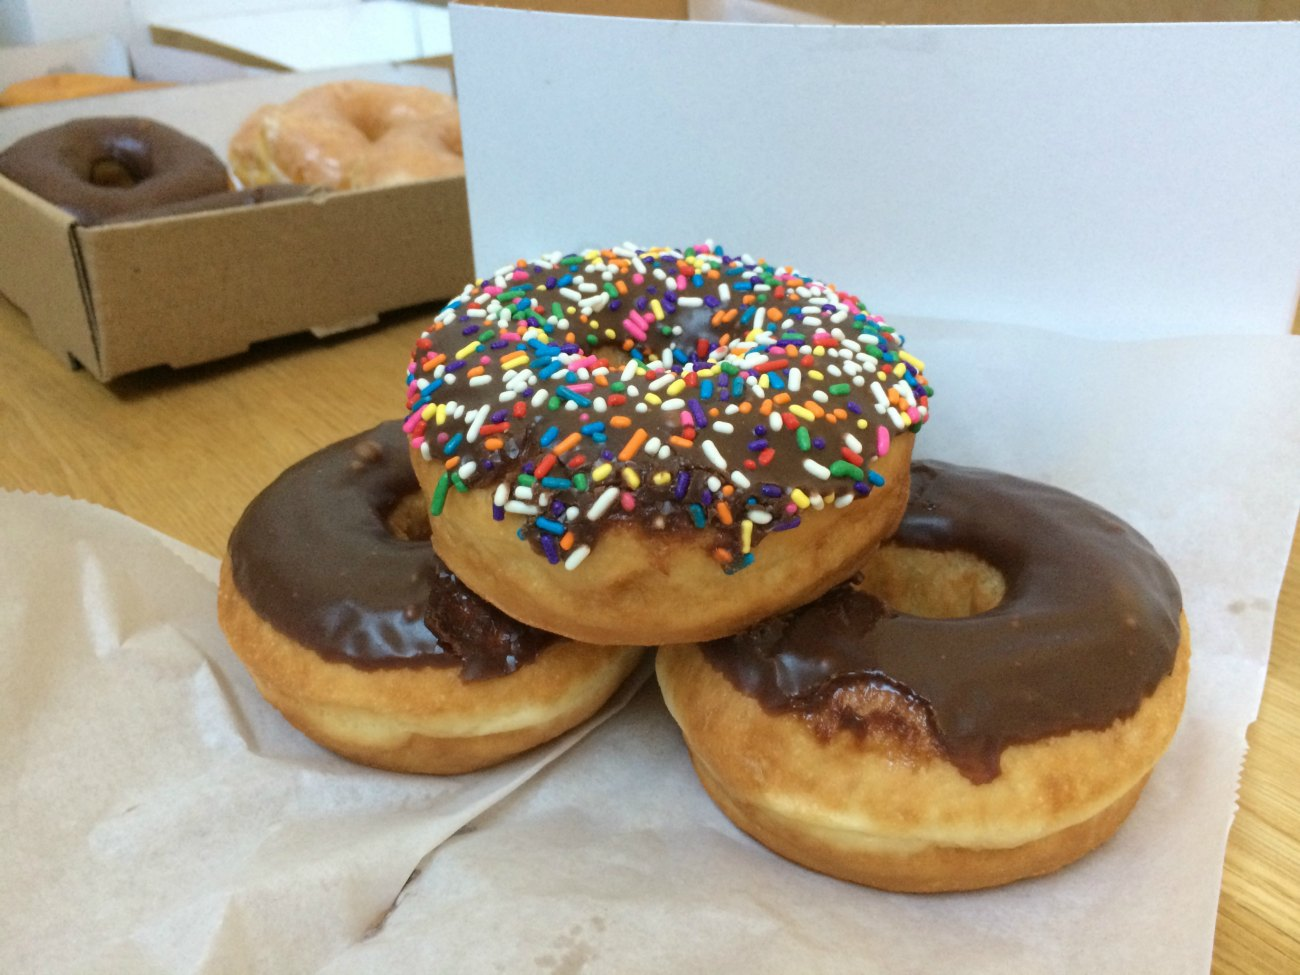 We blind taste tested 12 doughnuts from 6 shops to find the very best in greater Charlotte